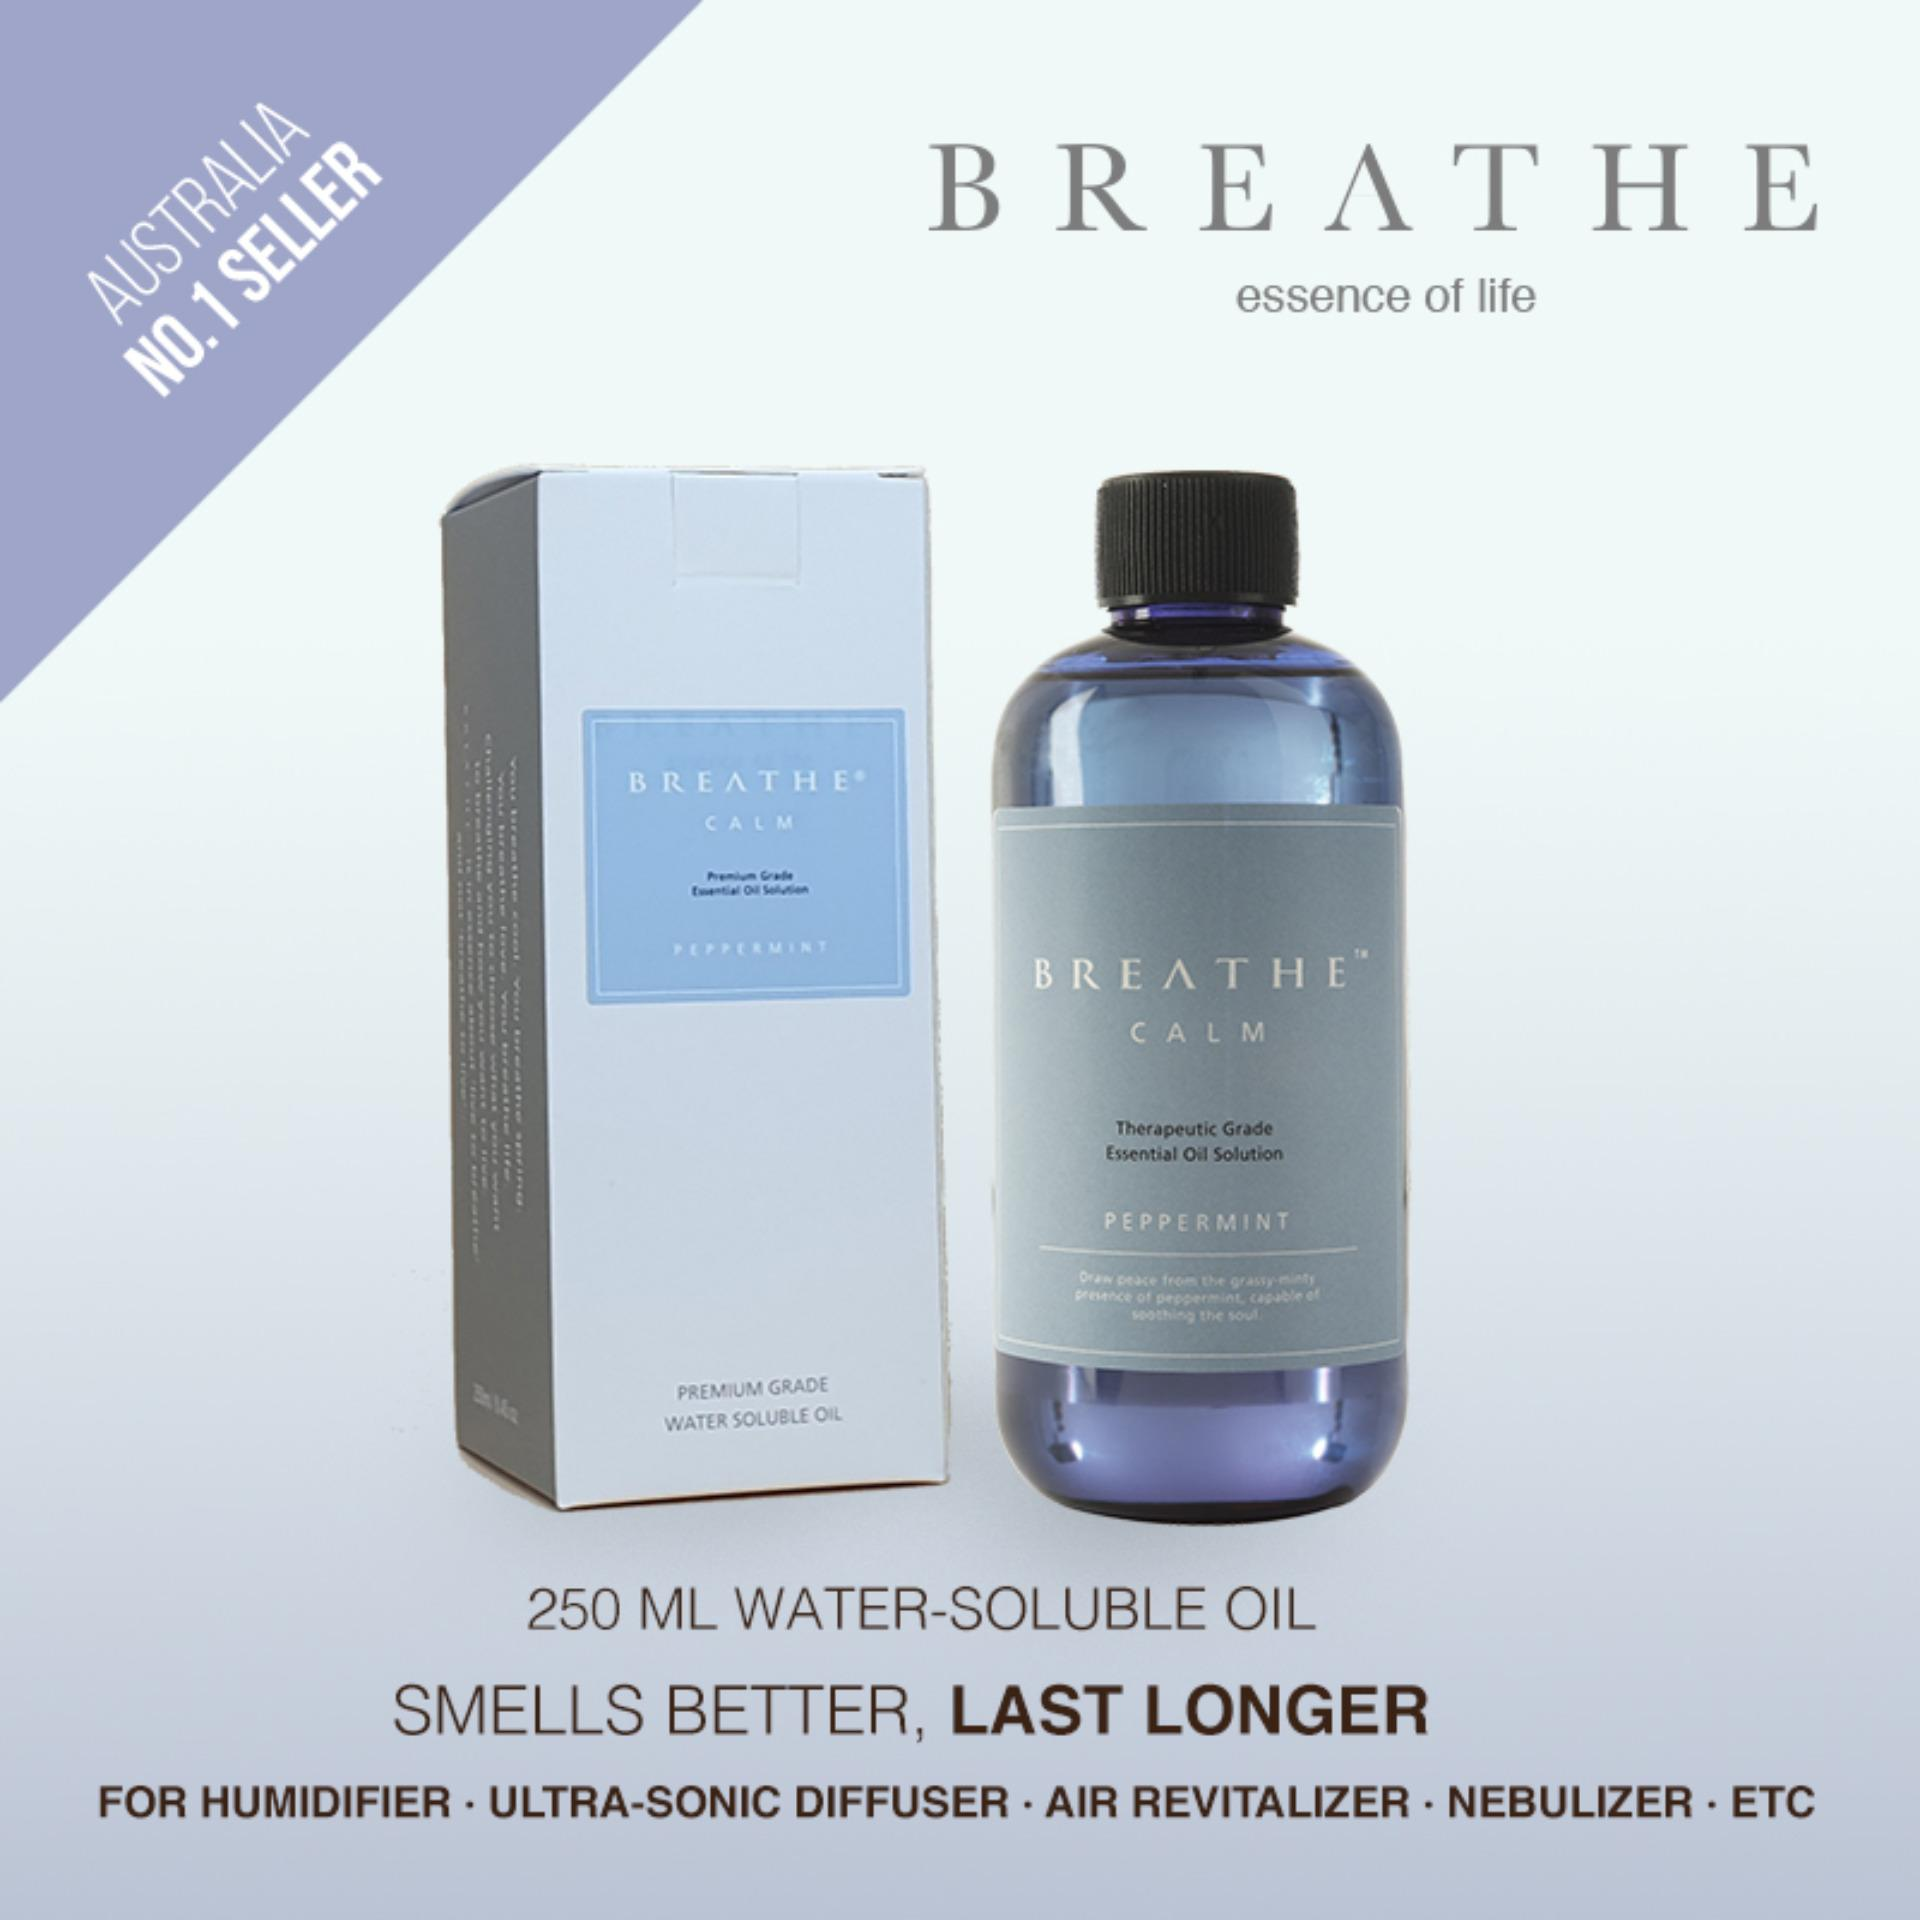 BREATHE Air Revitalizer Essence - Peppermint